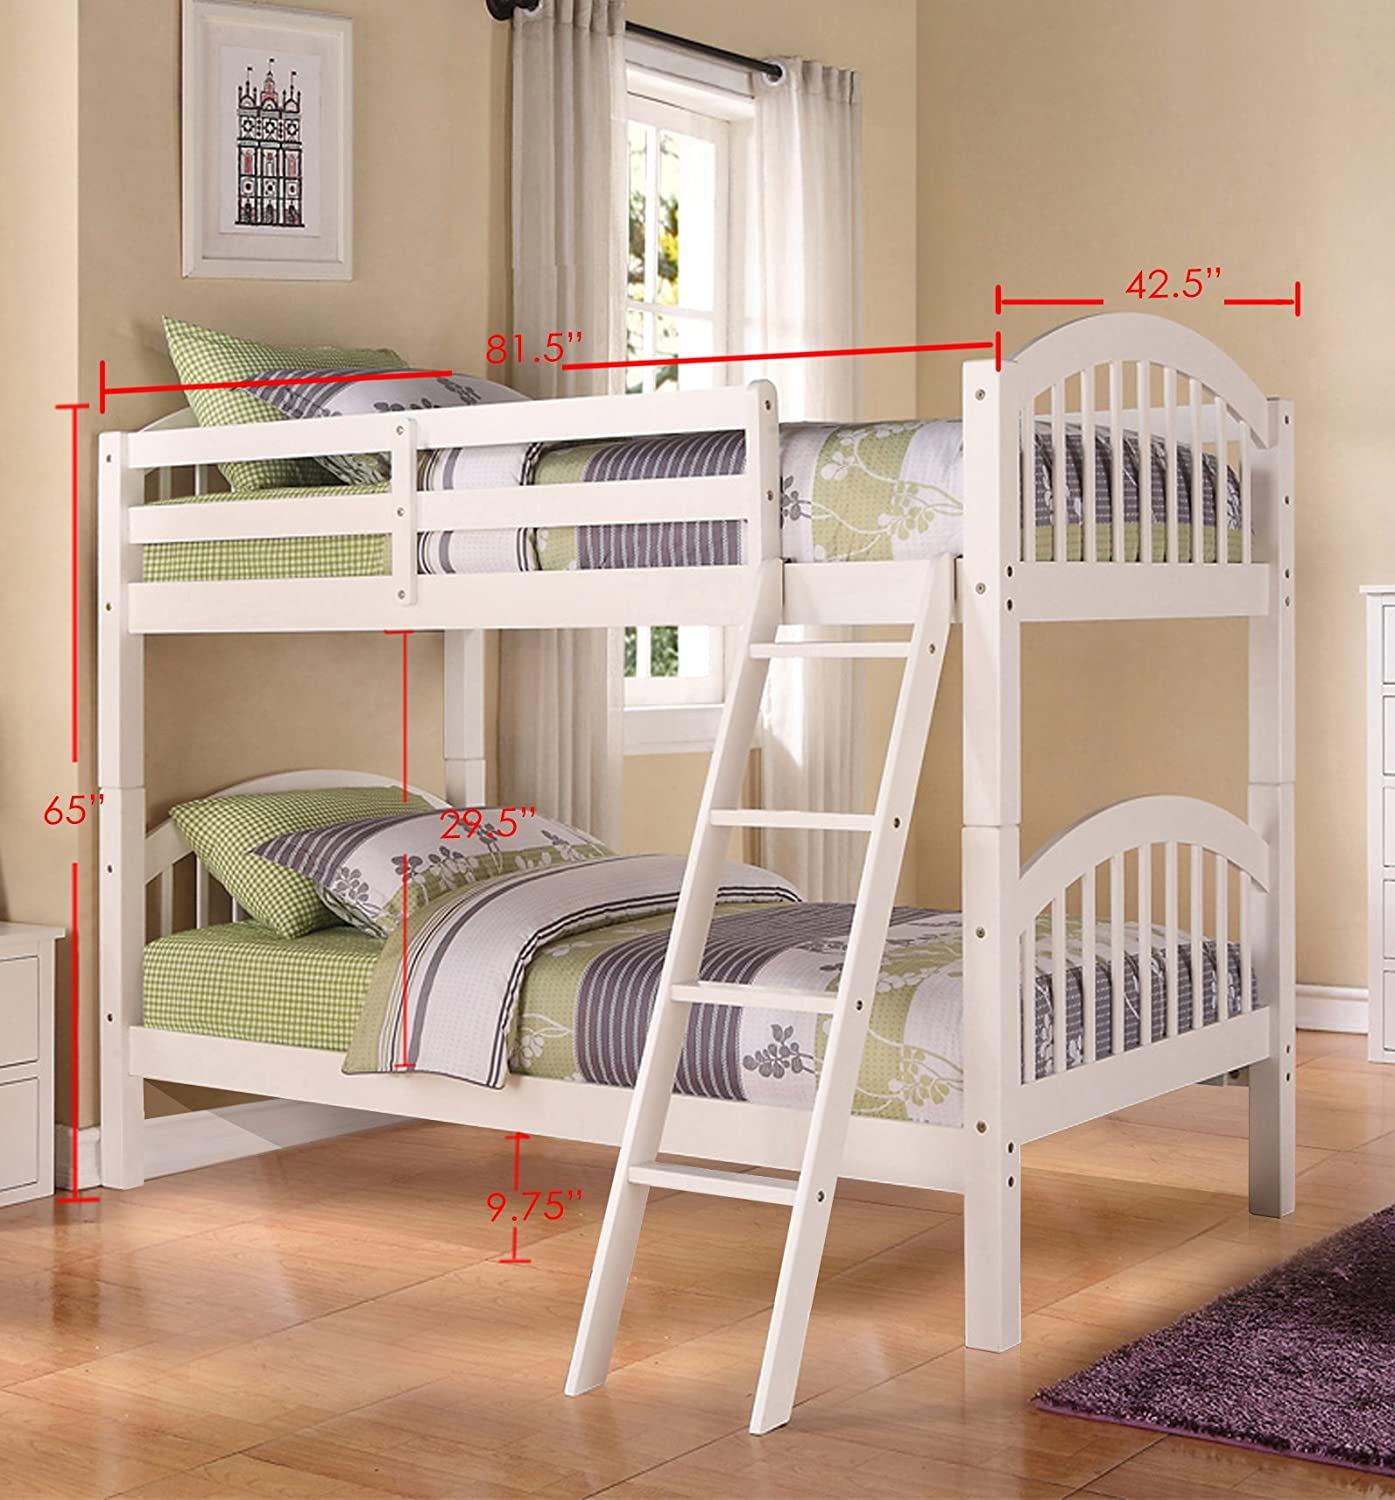 InRoom Designs B125W Wood Arched Design Twin Size Convertible Bunk Bed White ,